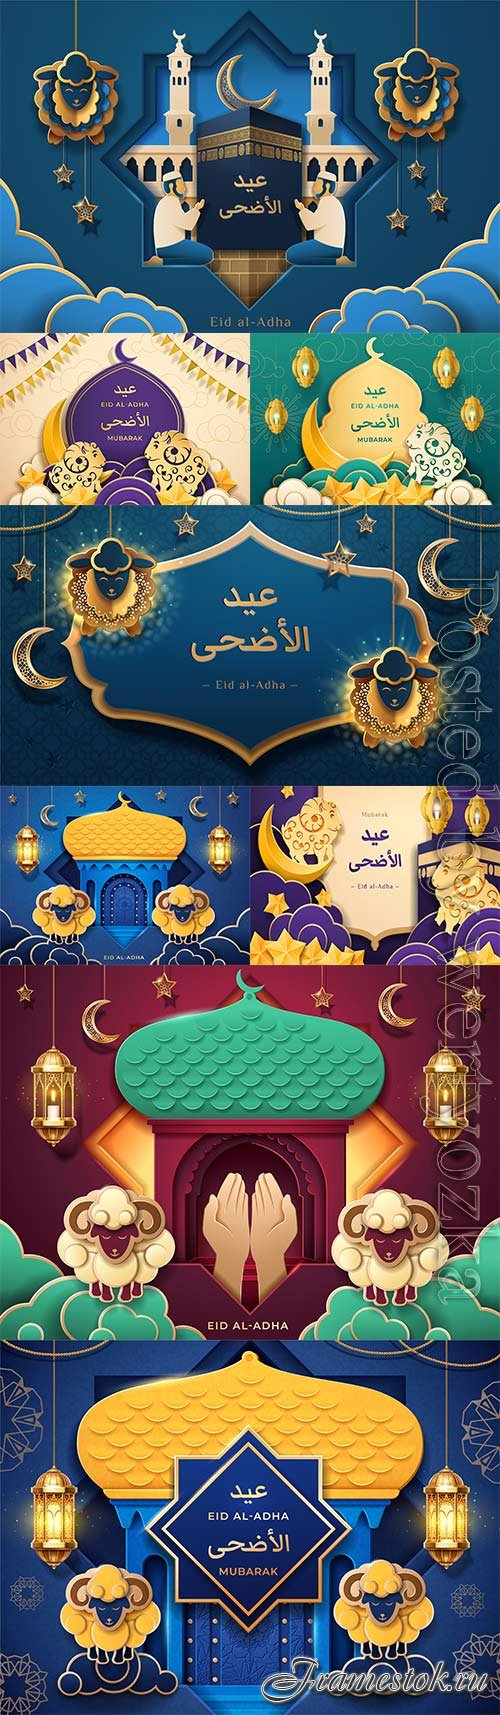 Paper mosque and sheeps on clouds lanterns for islam holiday celebration